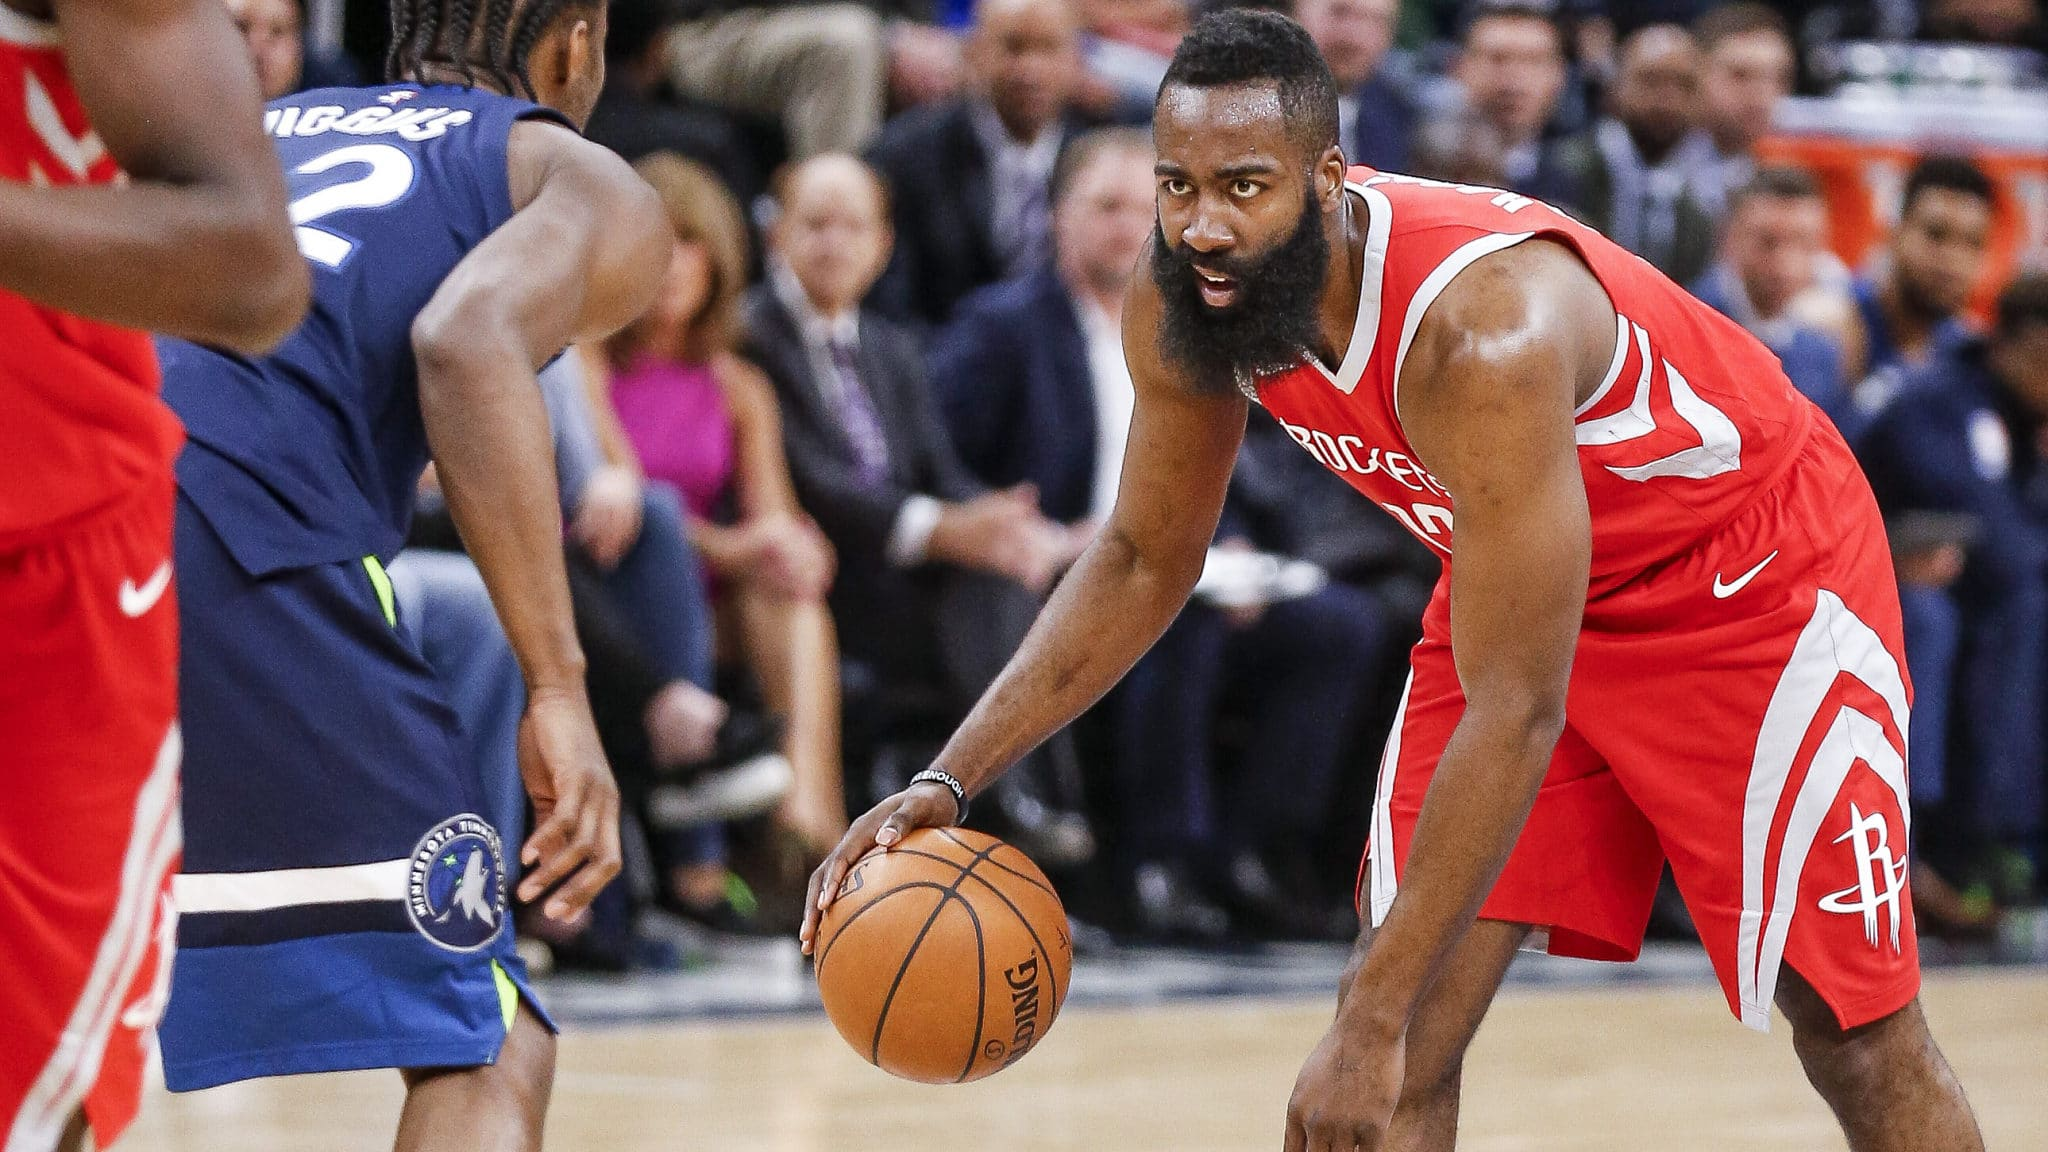 How to Hit a Step Back Like James Harden Without Traveling